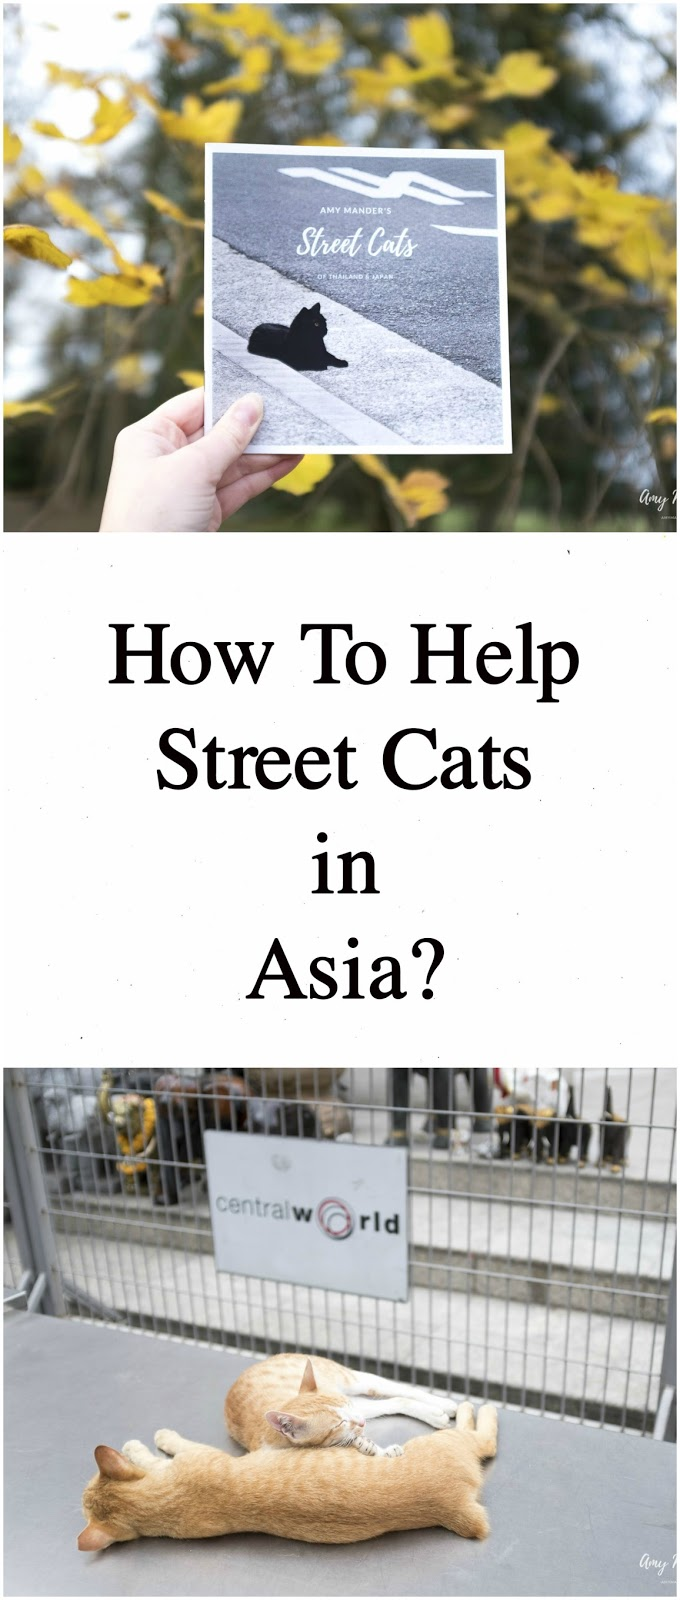 how to help street cats in asia